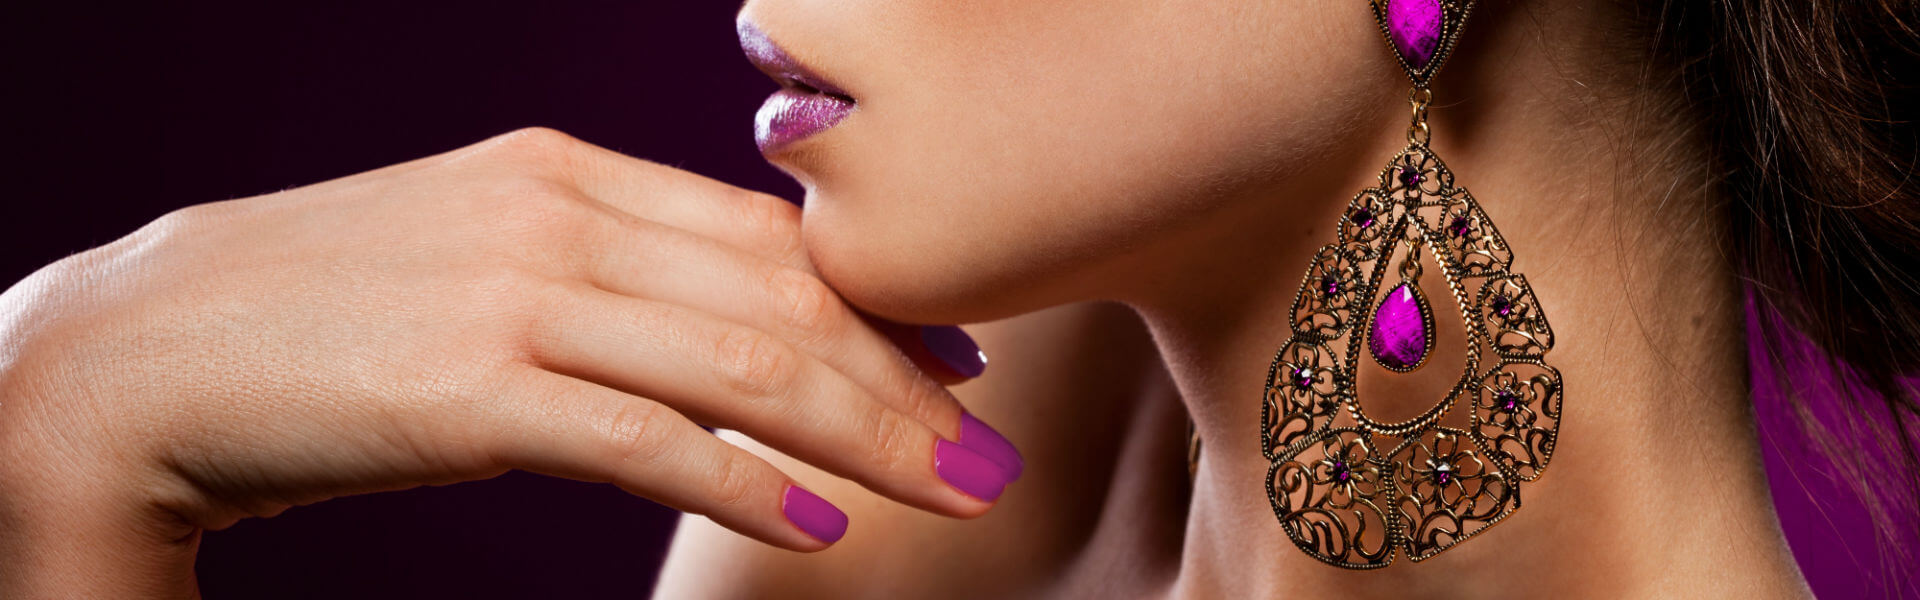 gorgeous_earings_nail_polish_purple_pink_hd-wallpaper-1330223